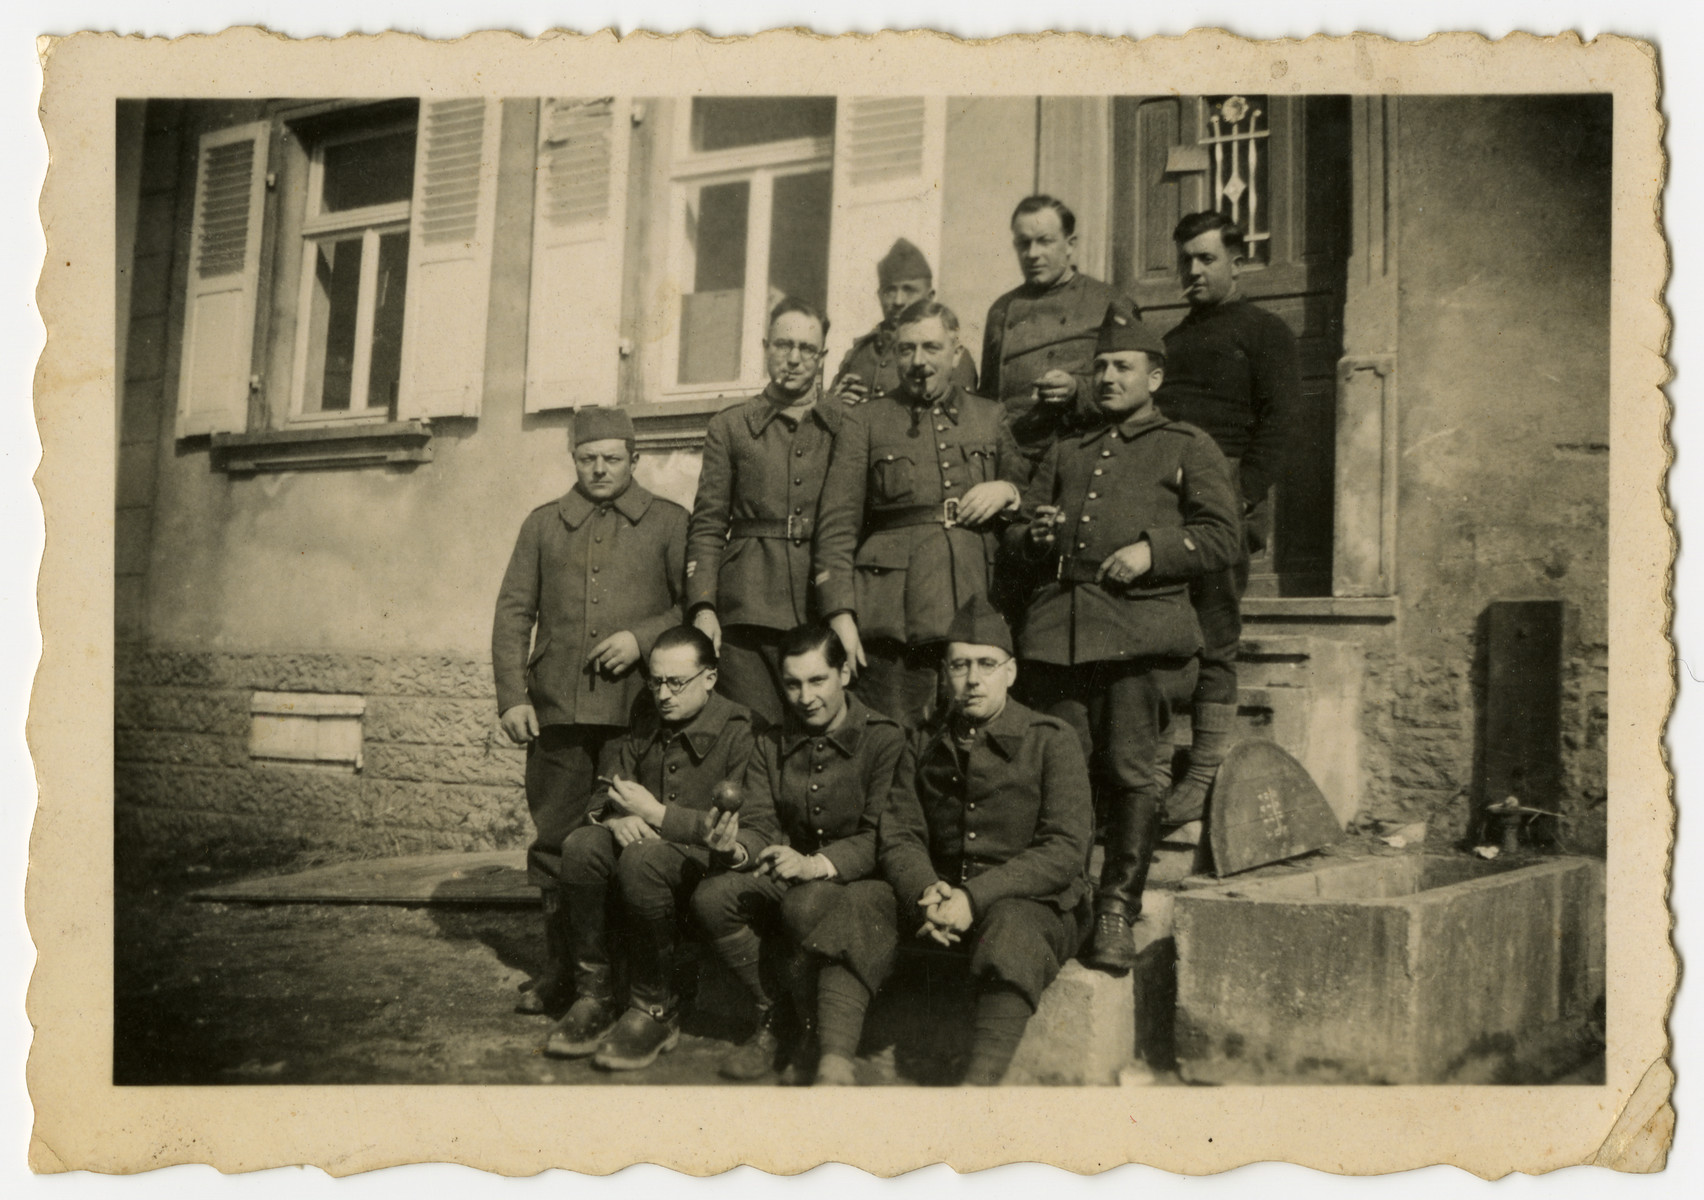 Group portrait of French soldiers.  Included are Alexander Markon, a Jewish immigrant from Lithuania.